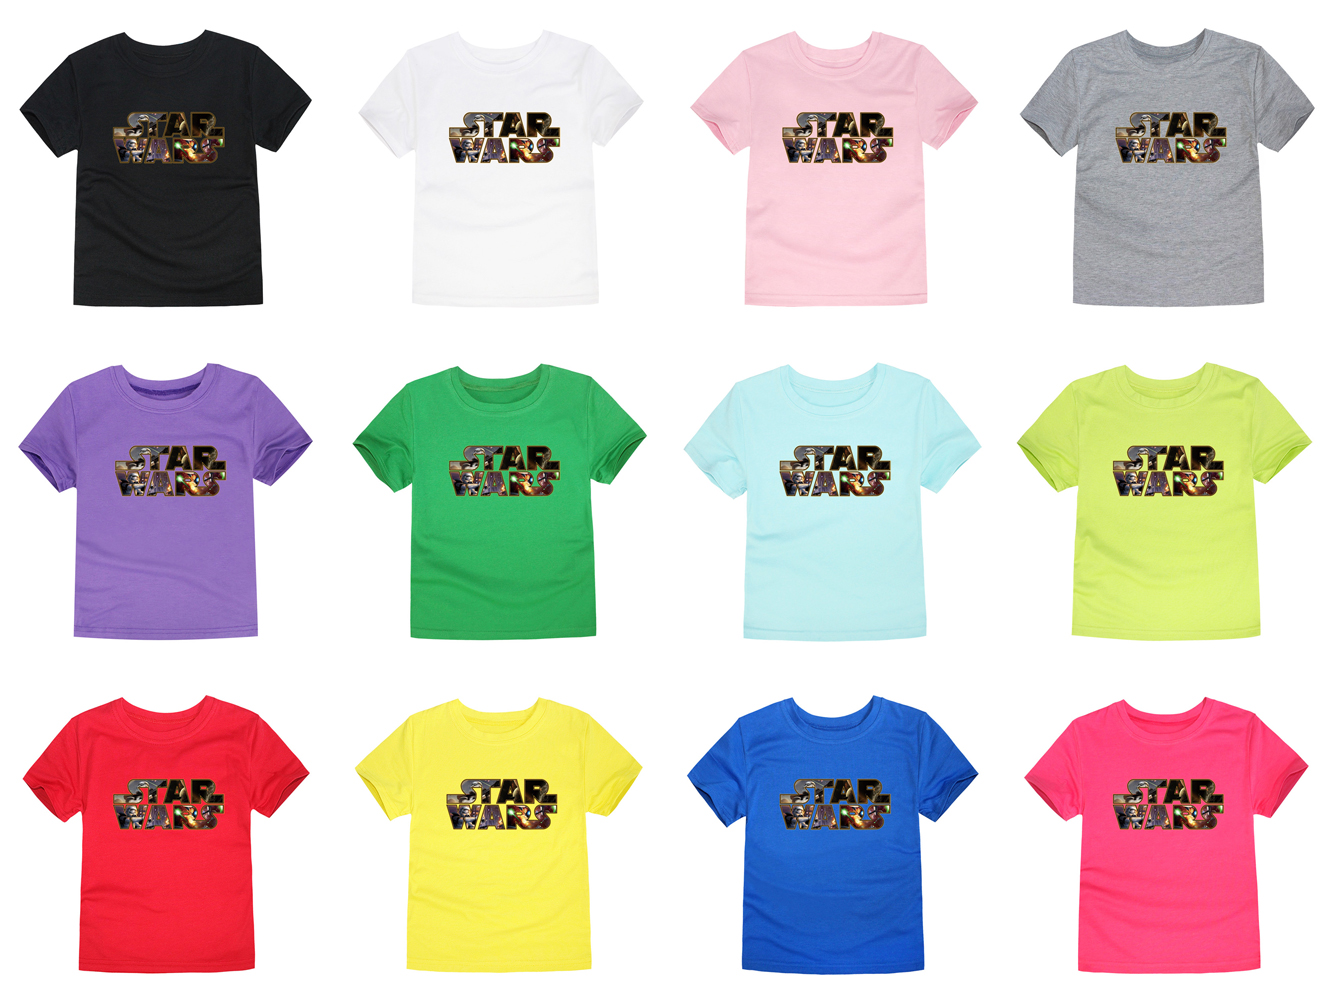 52f3a434eb Star Wars T Shirts For Babies - Ortsplanungsrevision Stadt Thun